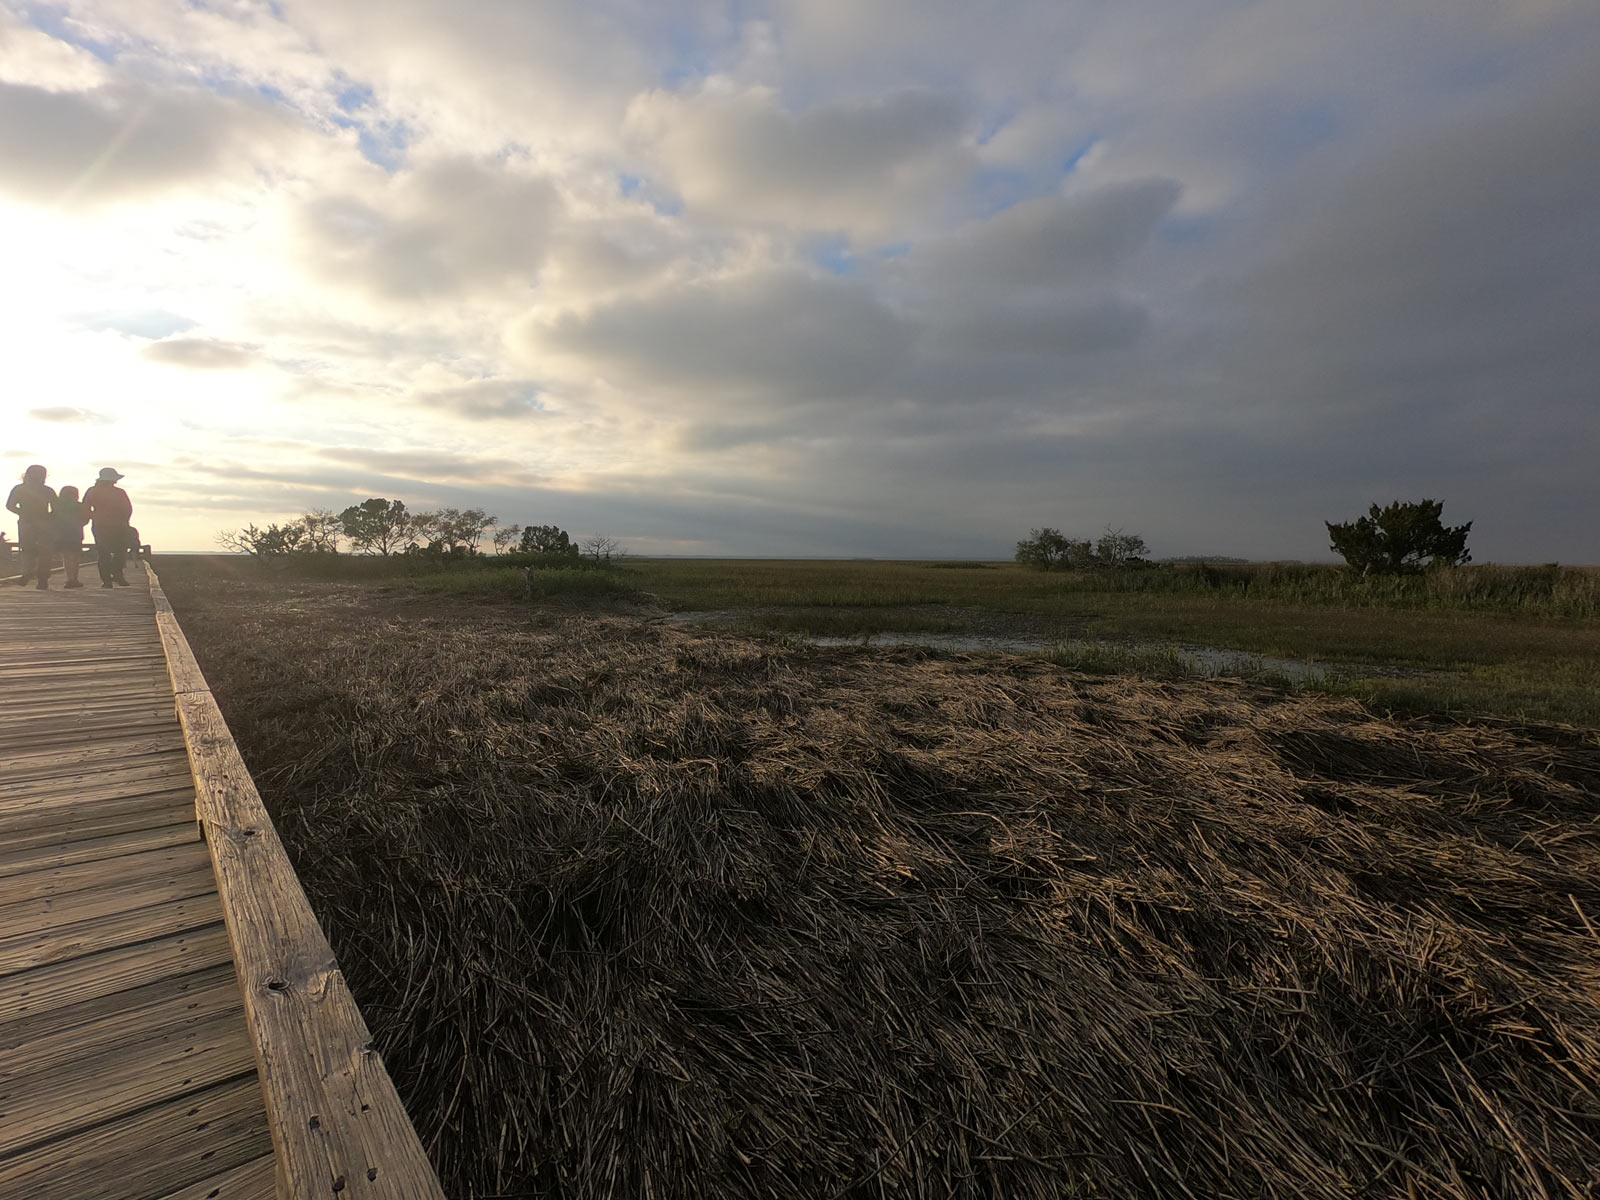 Marshwalk Boardwalk Trail at sunset on Hunting Island State Park, South Carolina